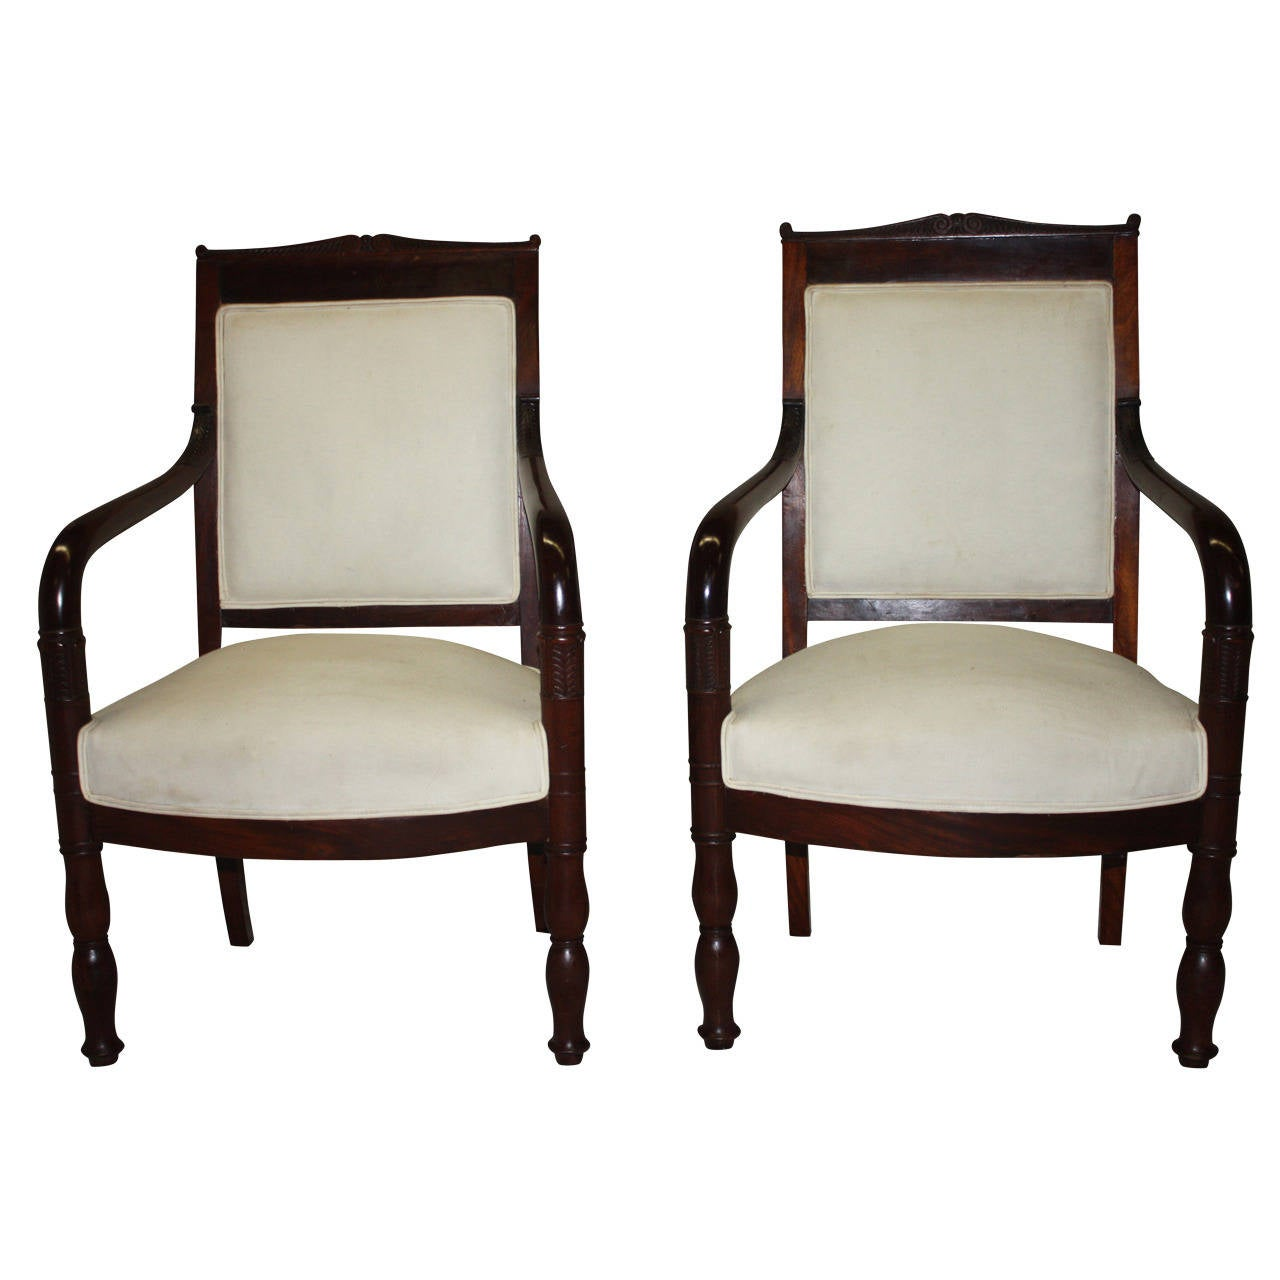 Early 19th Century Pair of Chairs For Sale